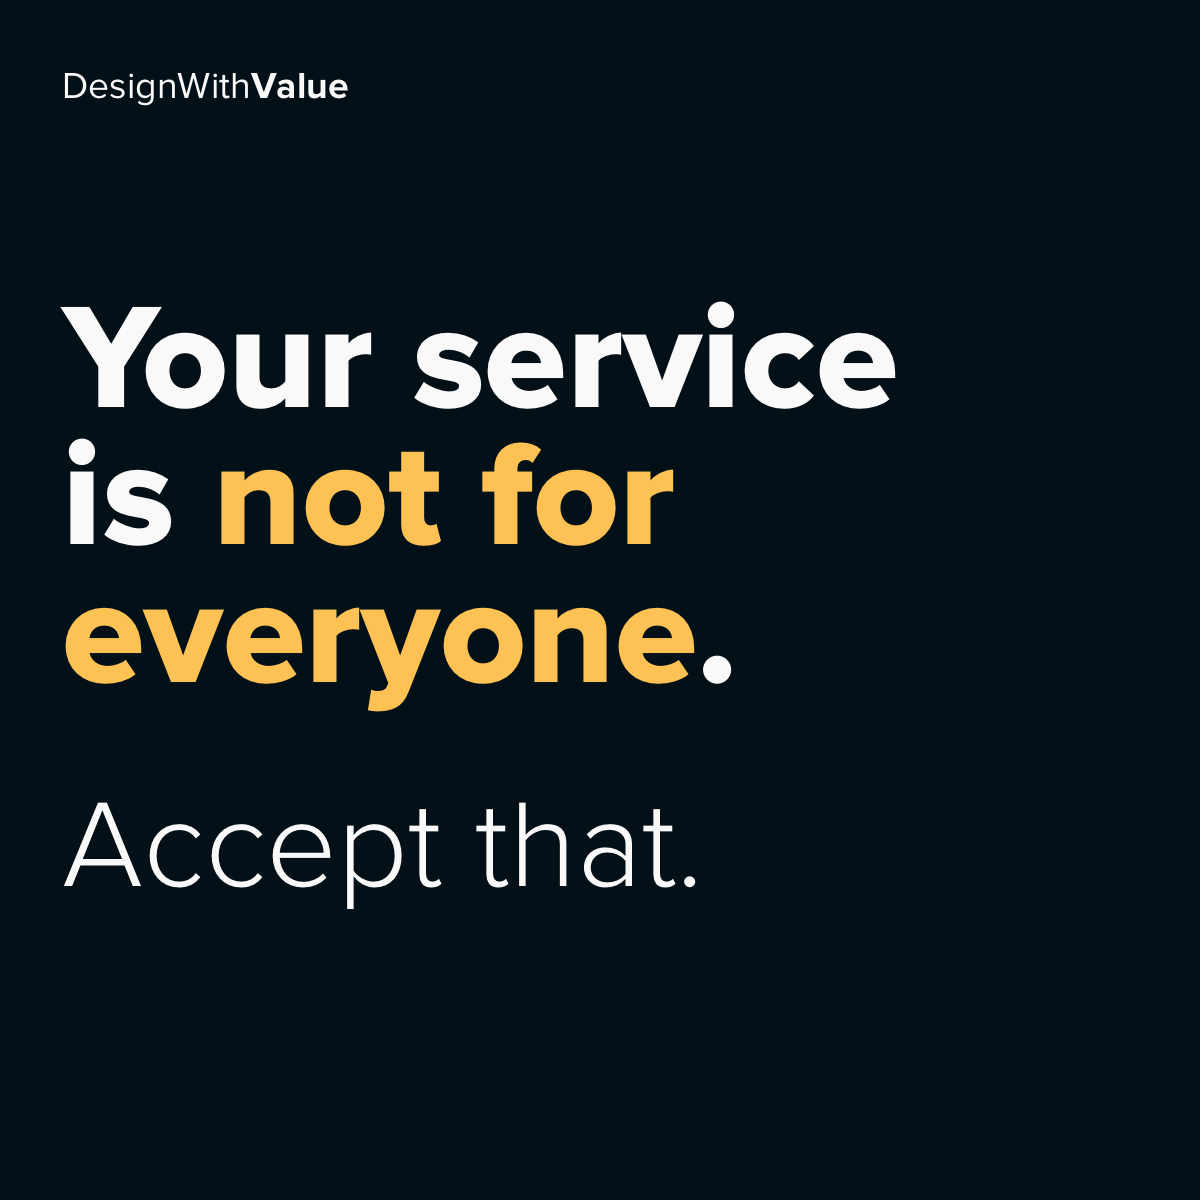 Your service is not for everyone - accept that.